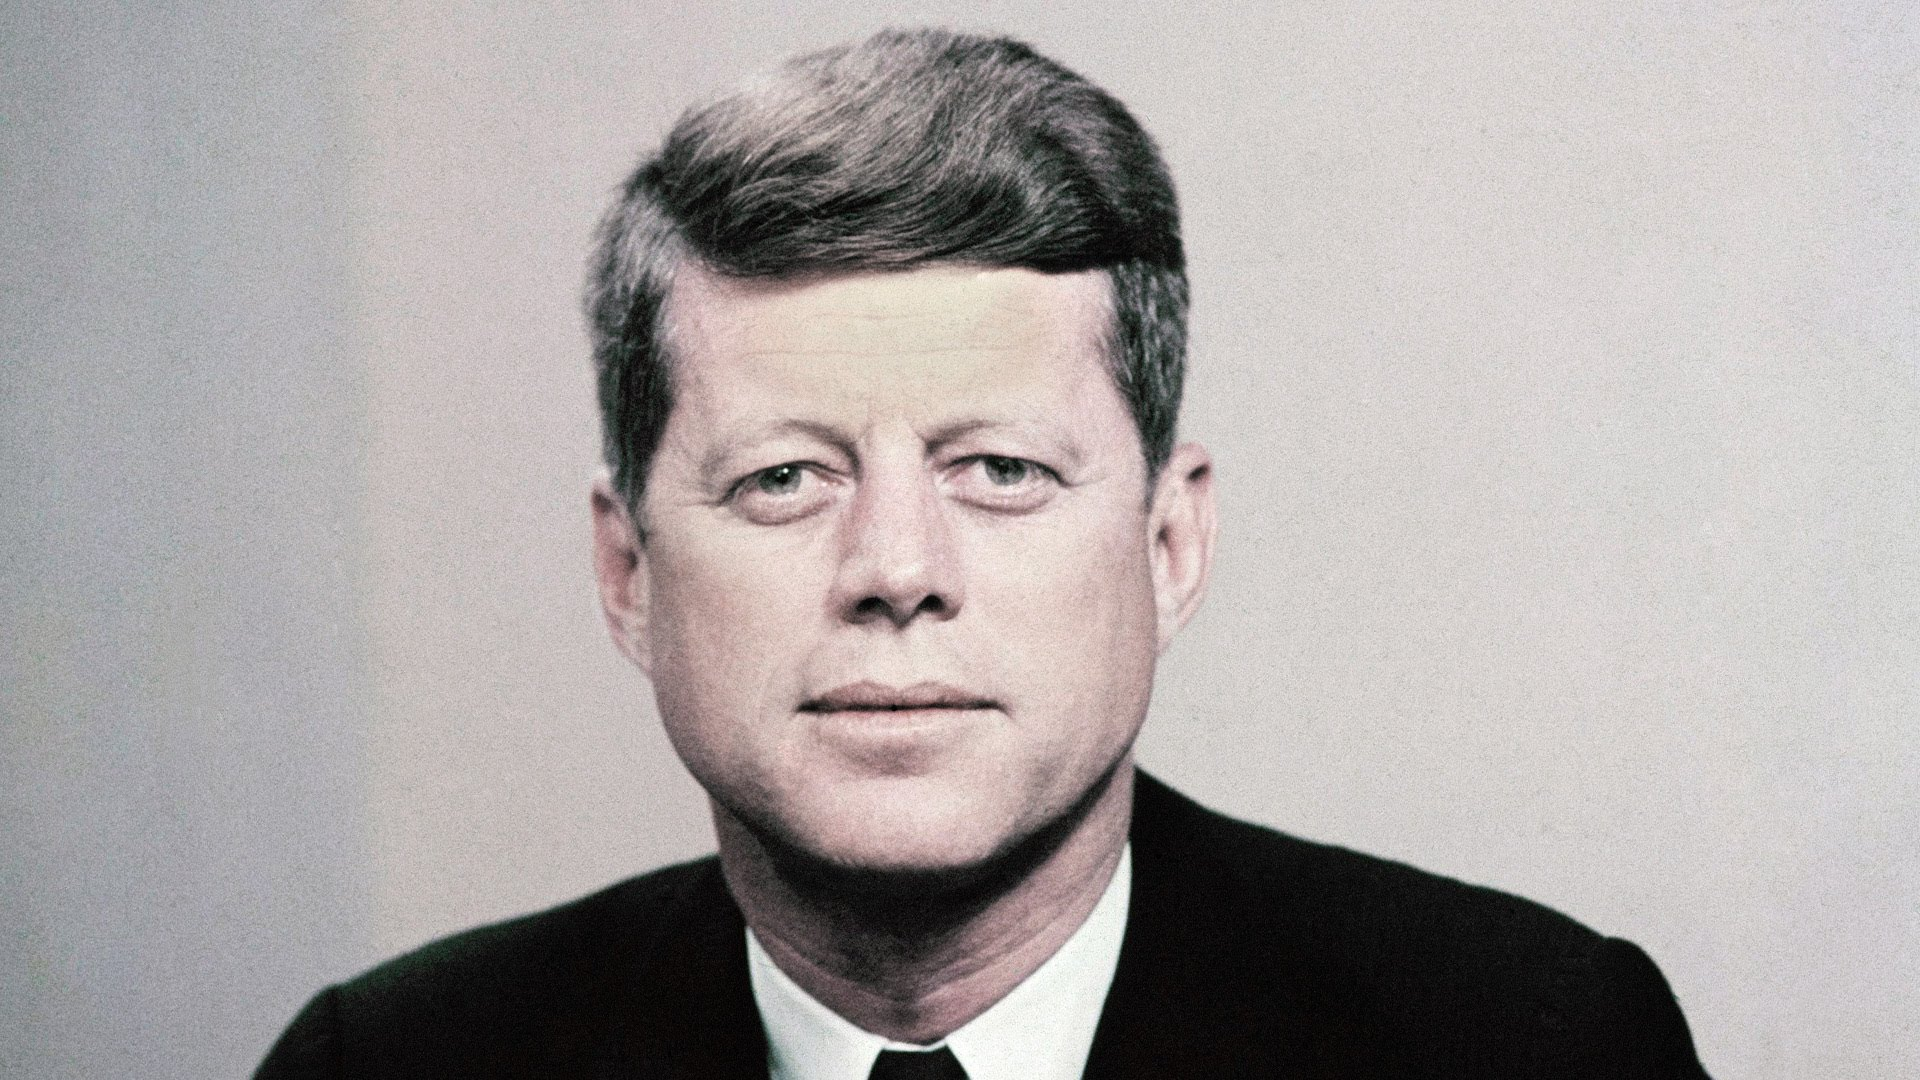 a look into life and achievements of john fkennedy the 35th president of the united states The life of jfk charismatic, charming and captivating are just some of the words often used to describe john f kennedy, the 35th president of the united states.